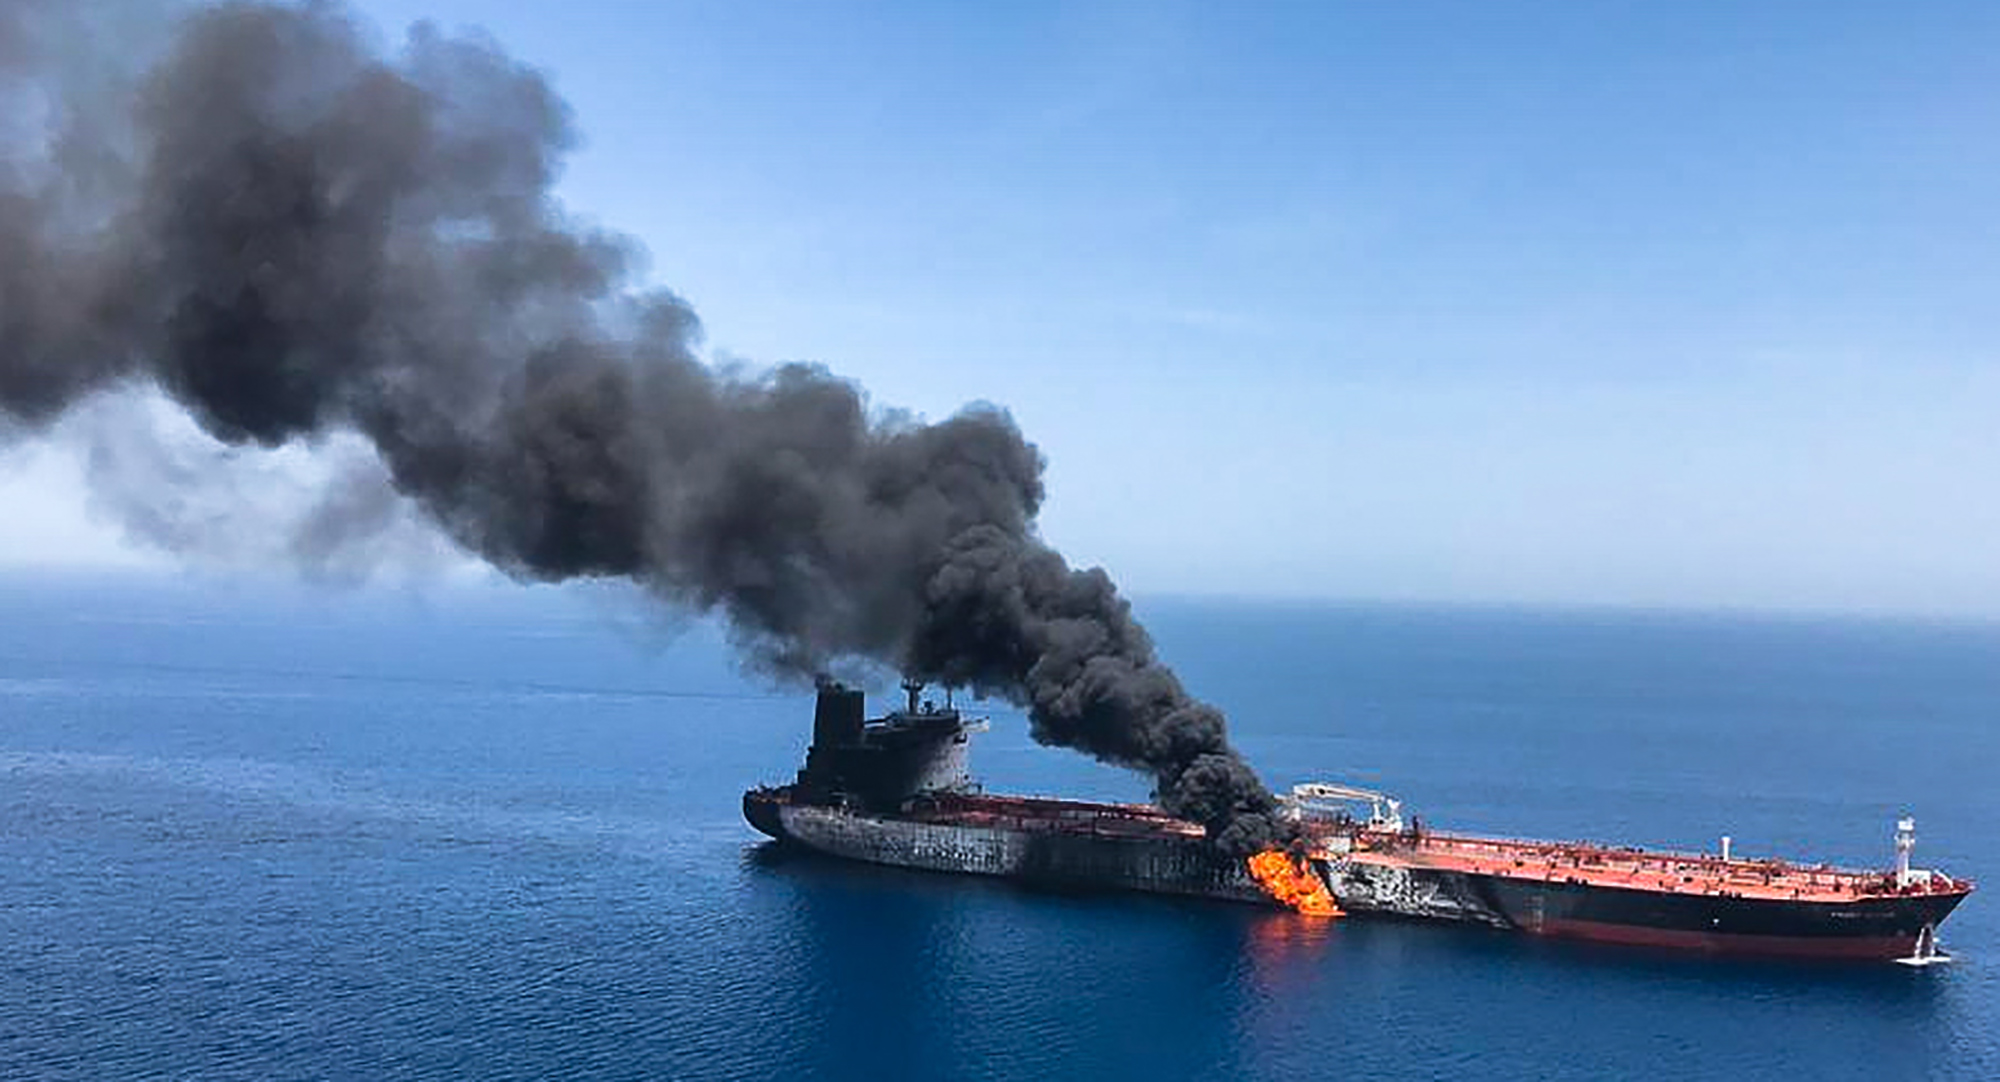 Just who is bombing oil tankers in the Strait of Hormuz